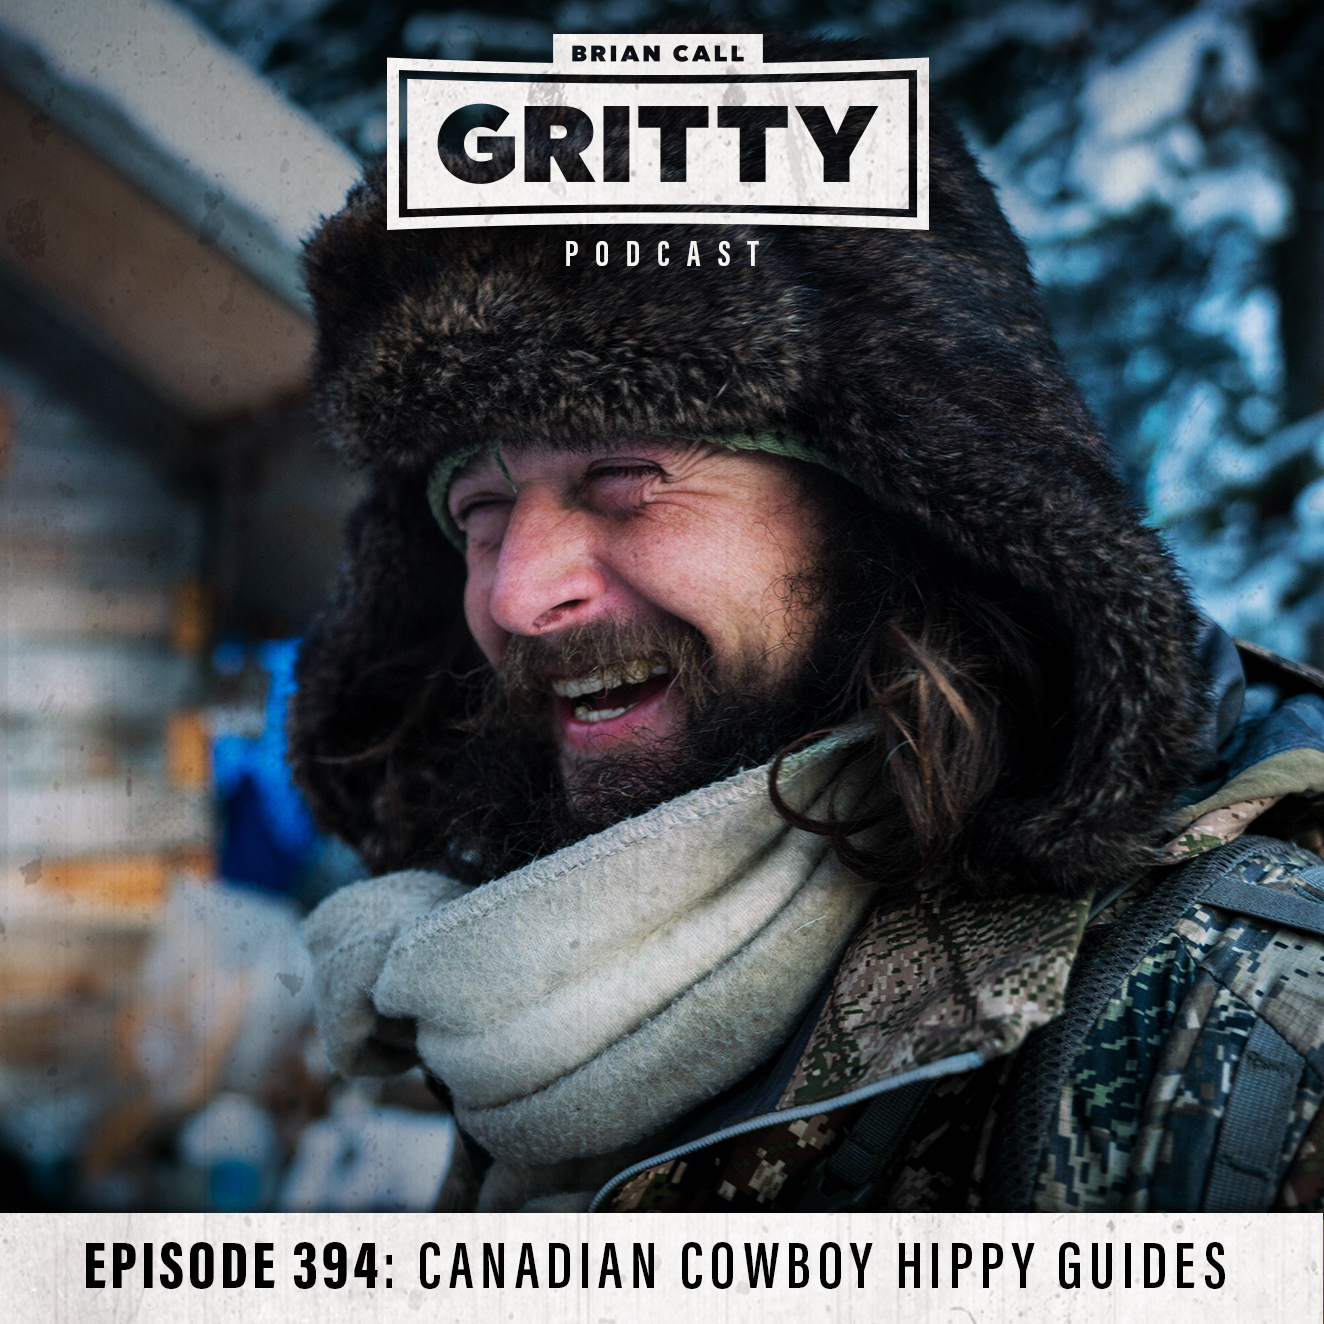 EPISODE 394: CANADIAN COWBOY HIPPY GUIDES